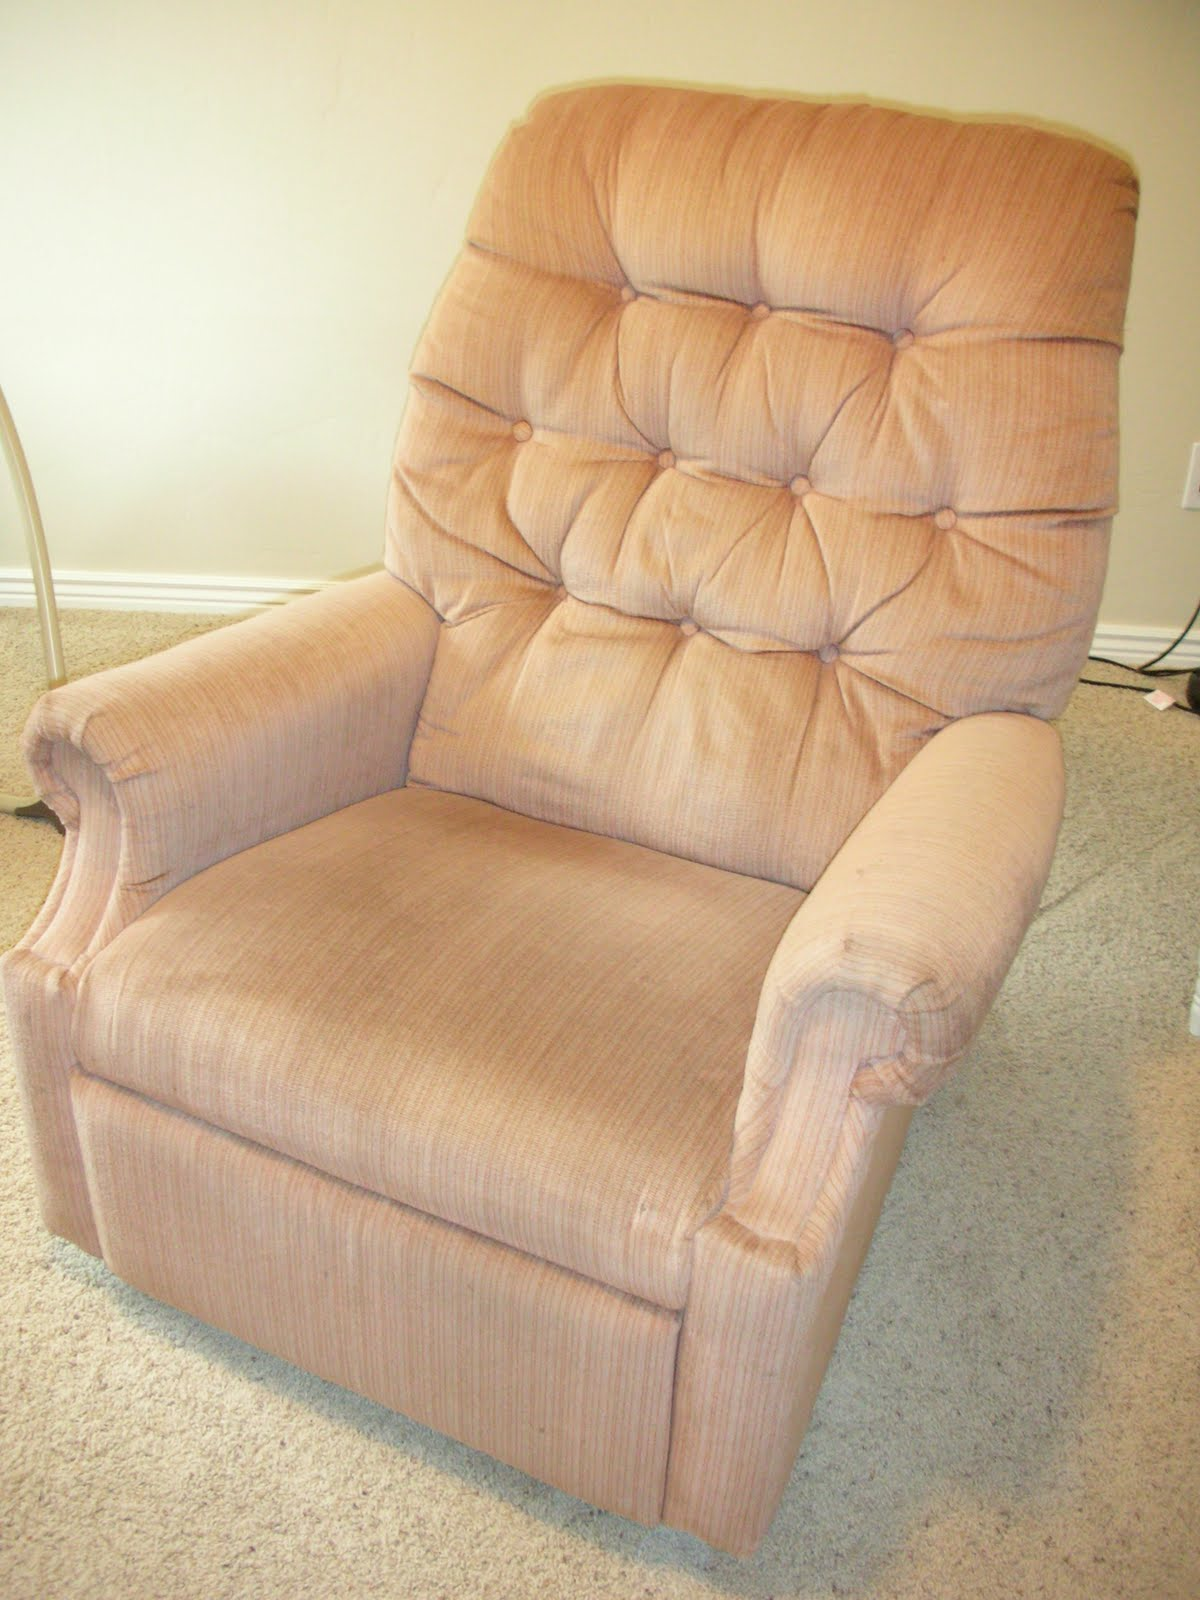 DIY Reupholster An Old La-Z-Boy Recliner & do it yourself as: DIY: Reupholster An Old La-Z-Boy Recliner islam-shia.org